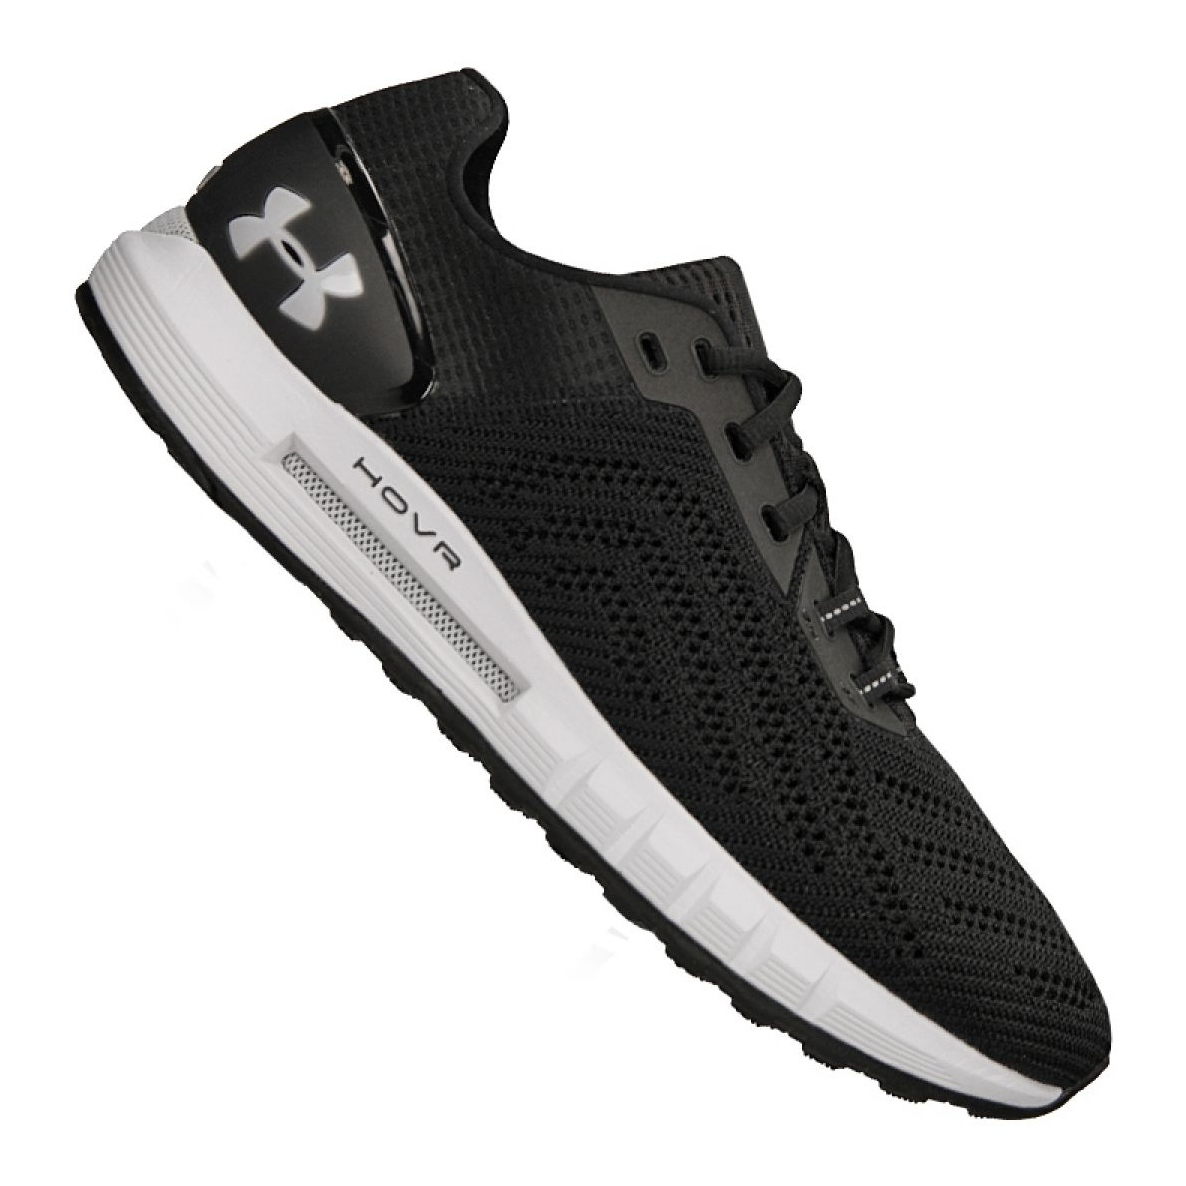 sports shoes 26a51 50dda Under Armour black Under Armor Hovr Sonic 2 M running shoes. 3021586-002